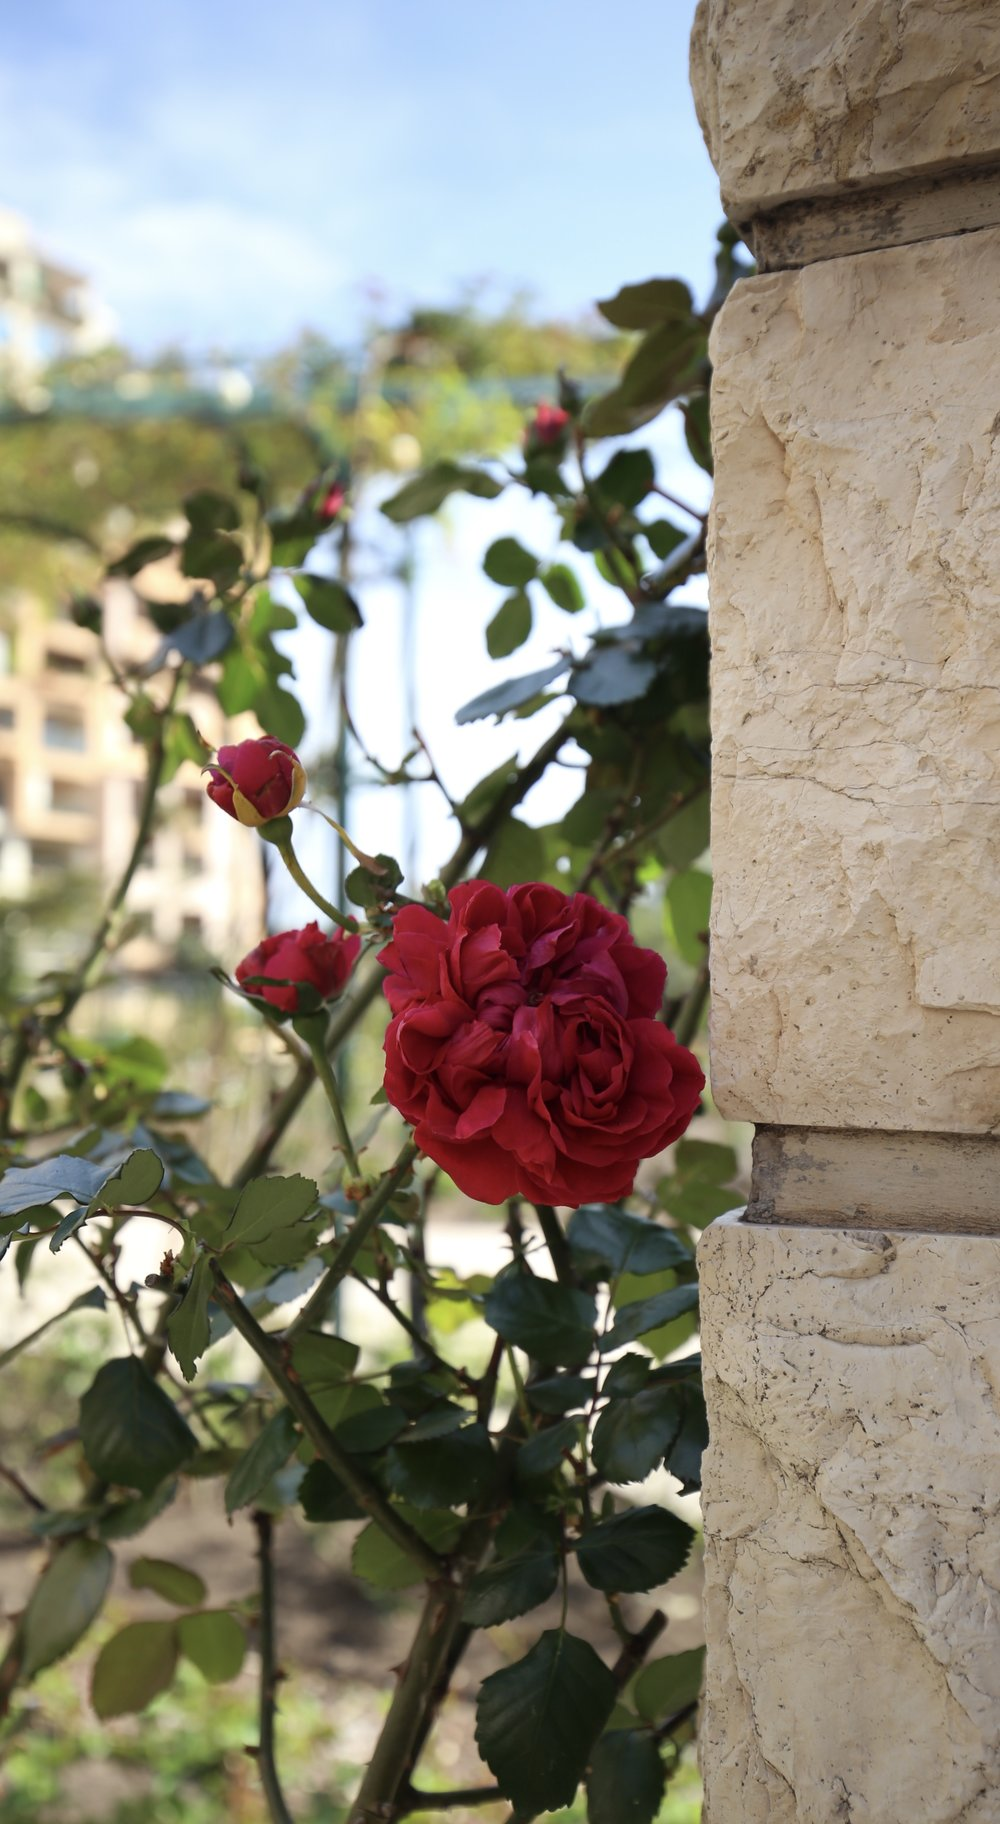 A red rose in the Princess Grace Rose Garden.